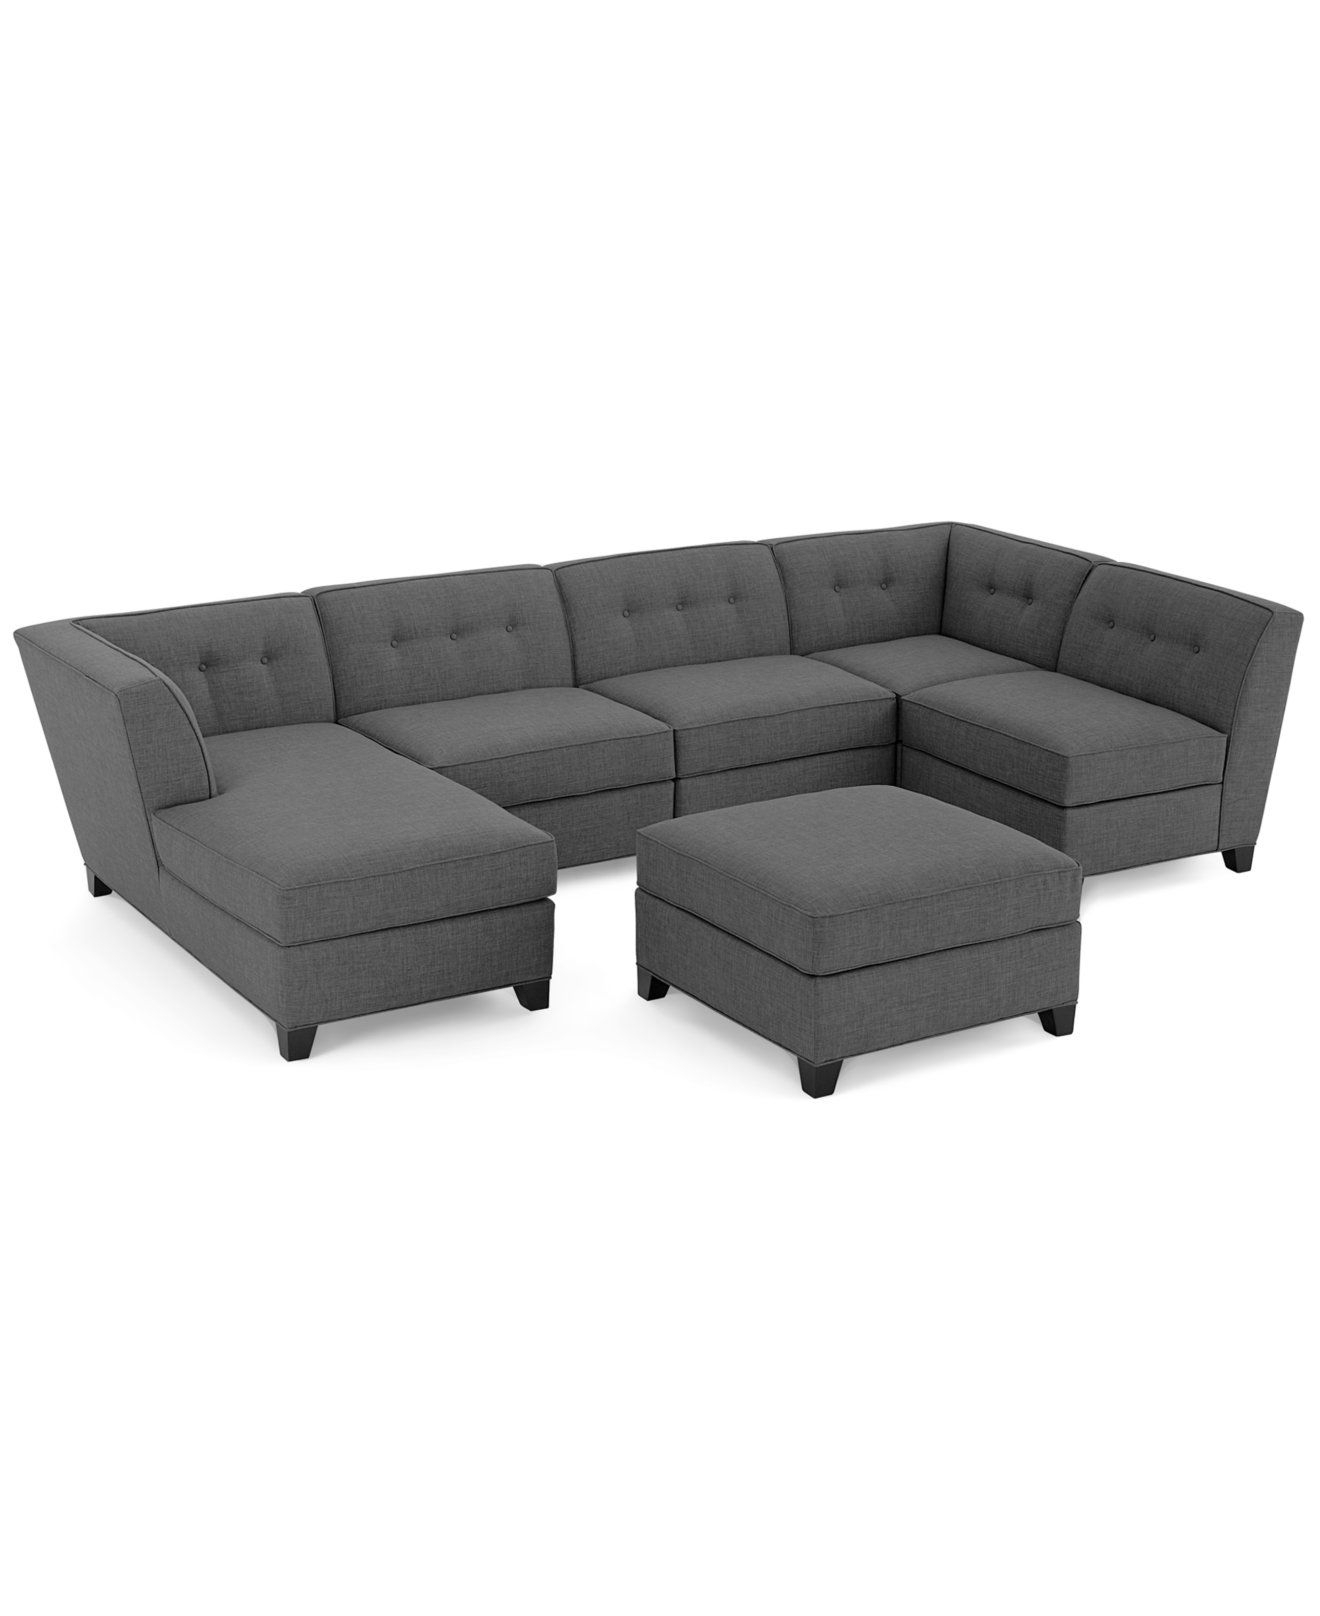 Newest Harper Fabric Modular Sectional Sofa, 6 Piece (Square Corner Unit Inside Harper Down Oversized Sofa Chairs (Gallery 6 of 20)